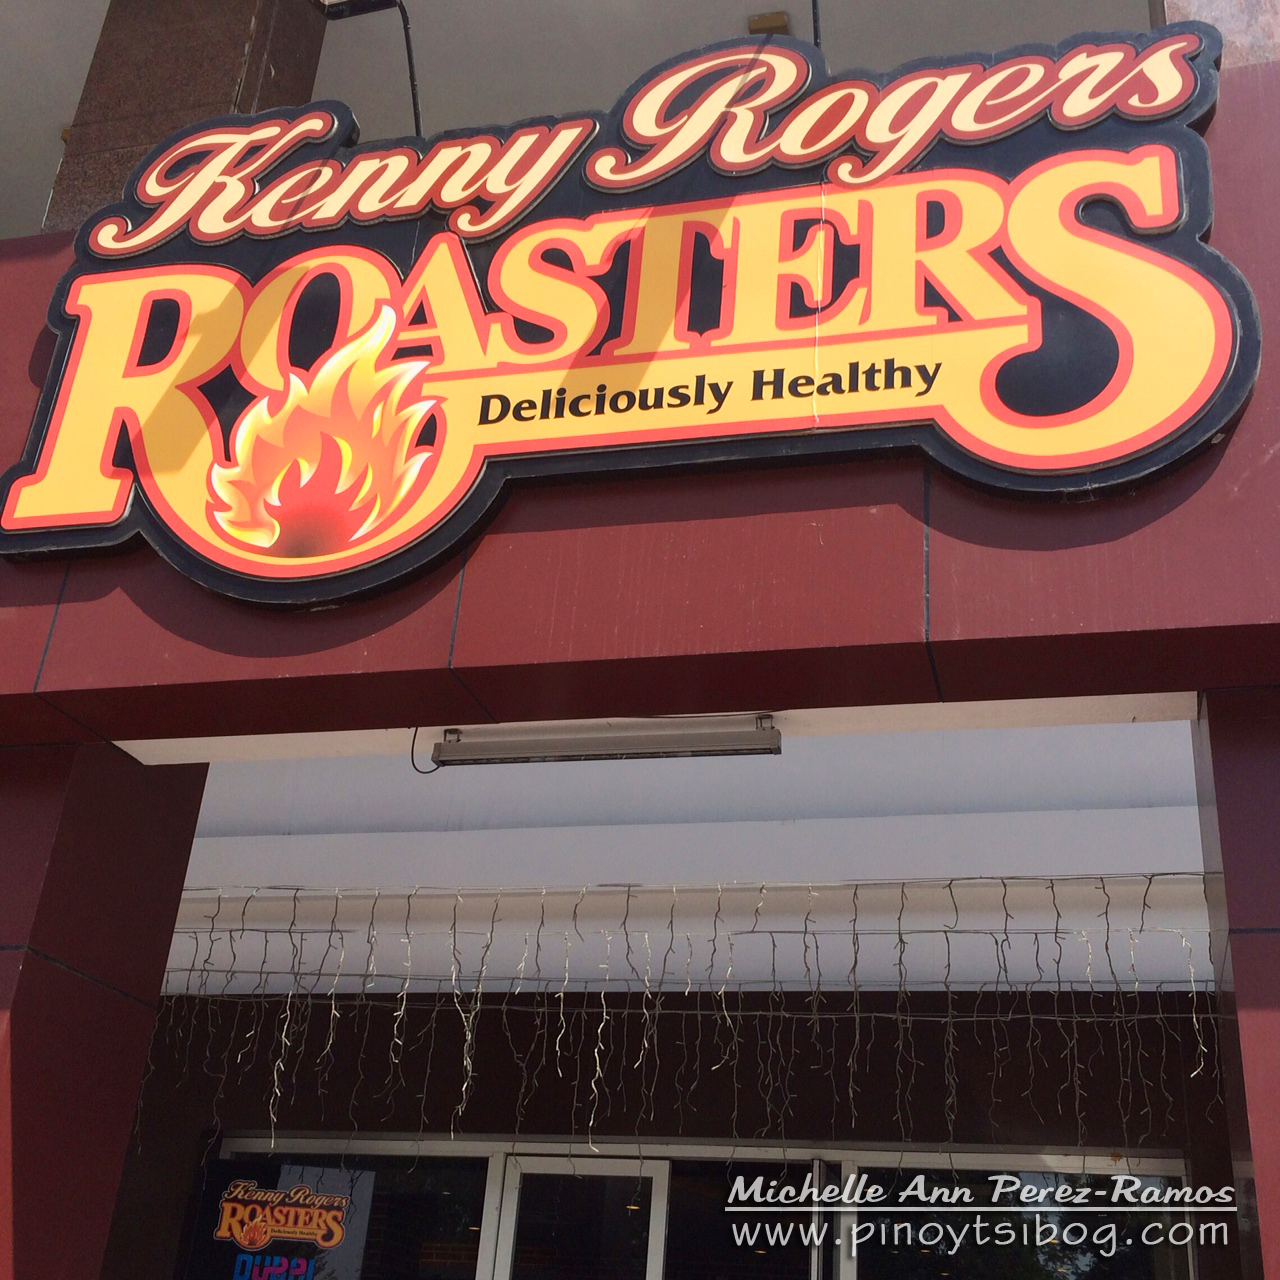 kenny rogers roaster Redeem a free 1/4 chicken meal from kenny rogers roasters on samsung members today hurry, promotion valid till 31st march 2018 only.